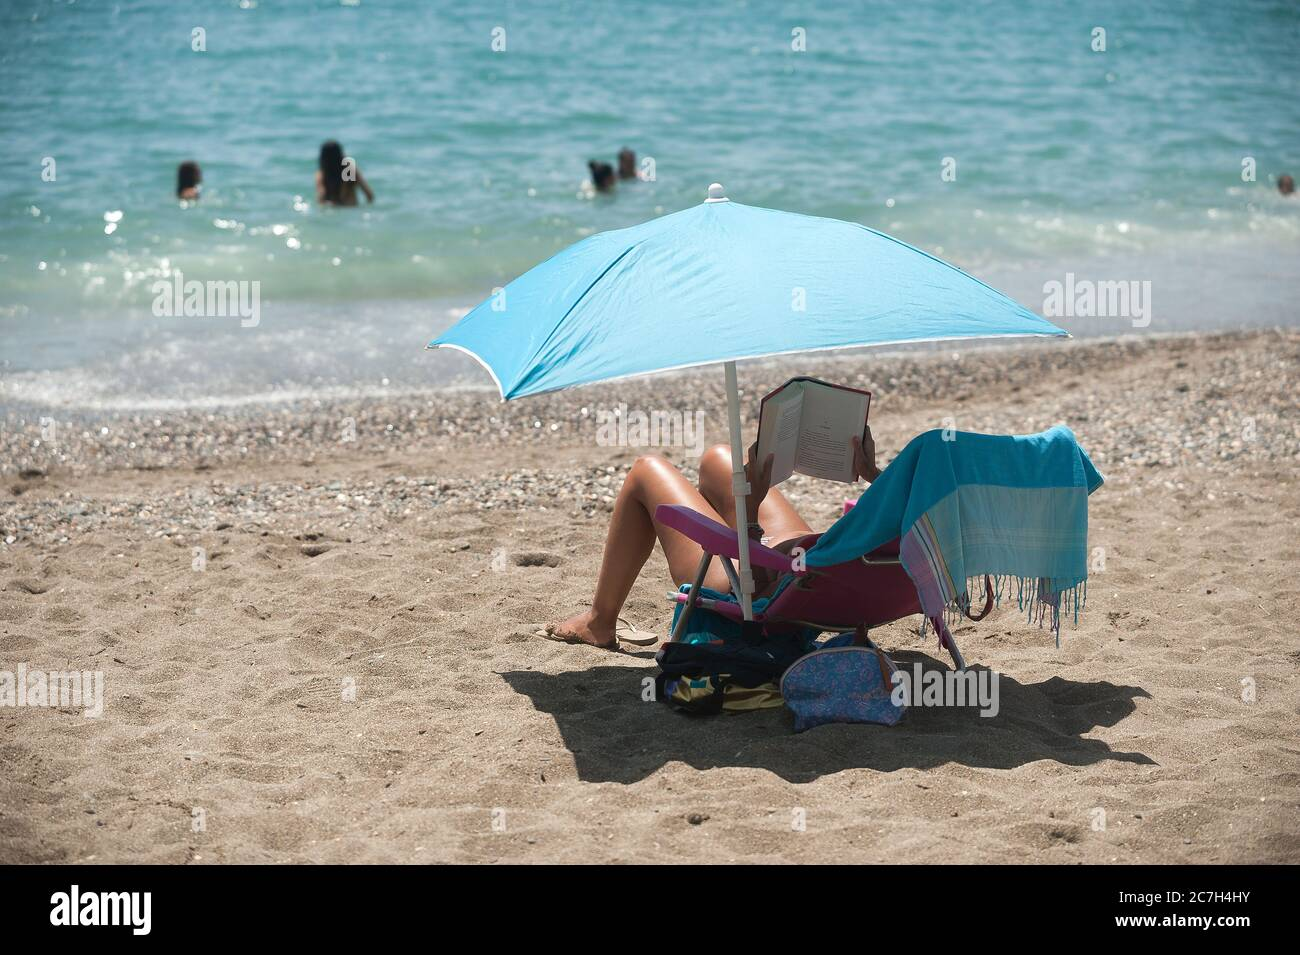 Malaga, Spain. 17th July, 2020. A woman is seen reading a book under an umbrella as she sunbathes at La Malagueta beach amid coronavirus crisis.The appearance of new coronavirus (COVID-19) outbreak in Spain after easing of restrictions has caused the regional government to impose the obligatory use of face masks in outdoors places even when they observe a safe distance between people. This measure tries to curb the spread of coronavirus pandemic. Credit: SOPA Images Limited/Alamy Live News Stock Photo